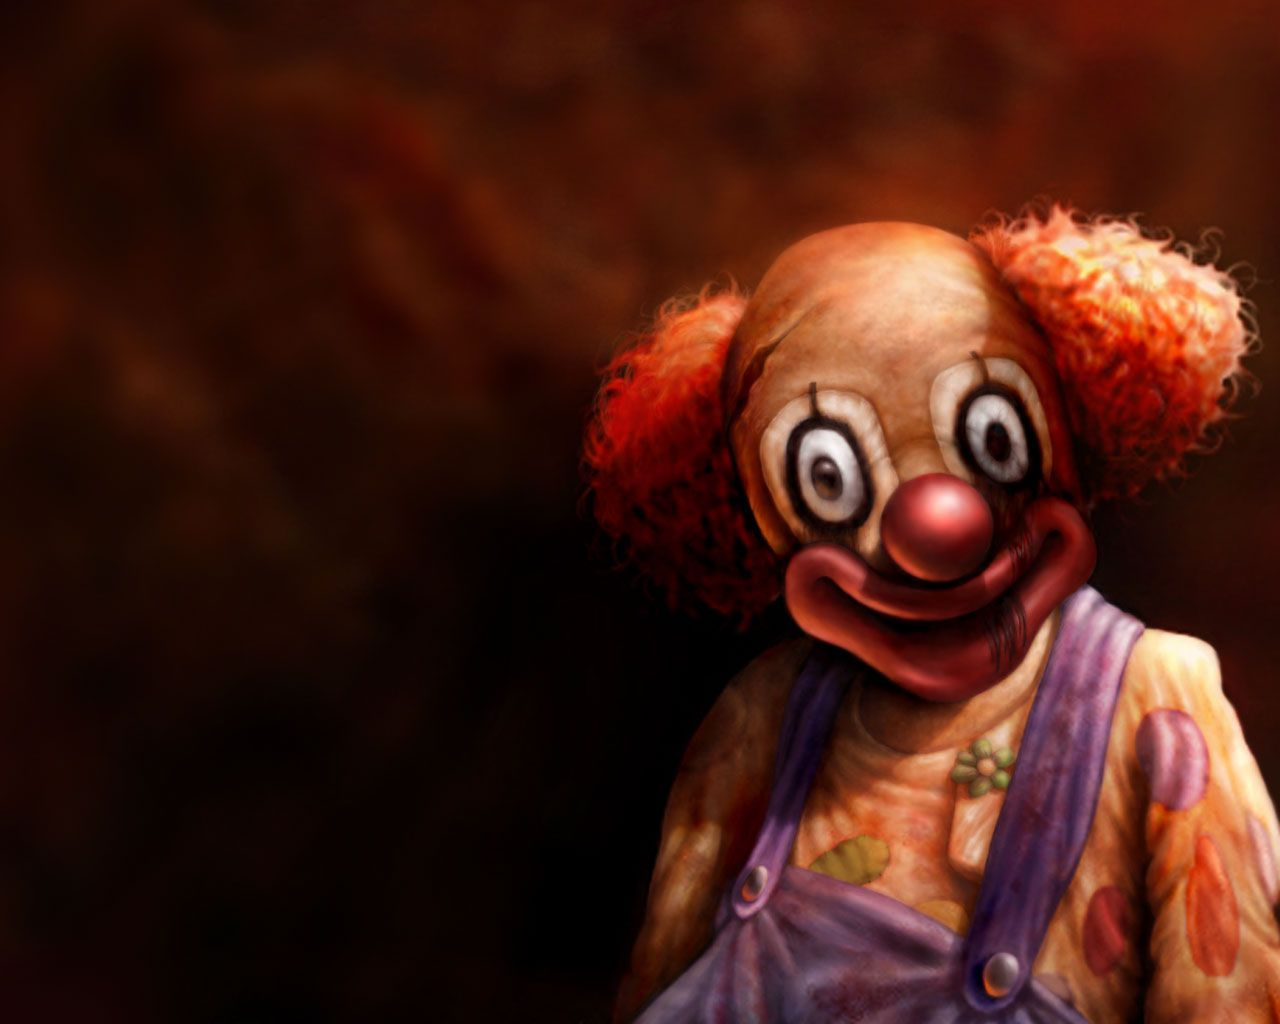 Collection of Creepy Clown Wallpaper on HDWallpapers